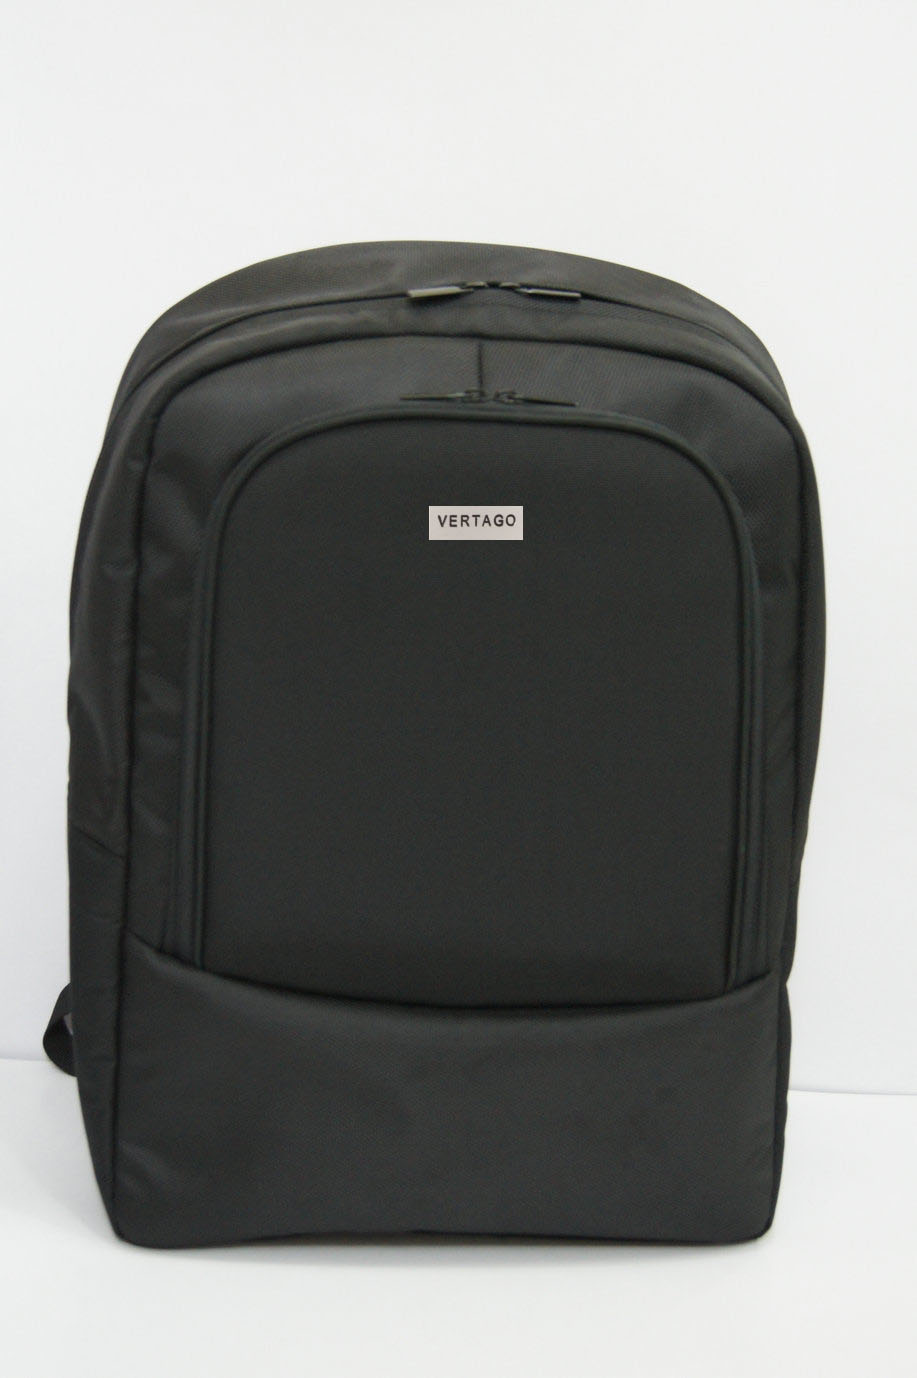 VTG-565 Business Backpack Rain